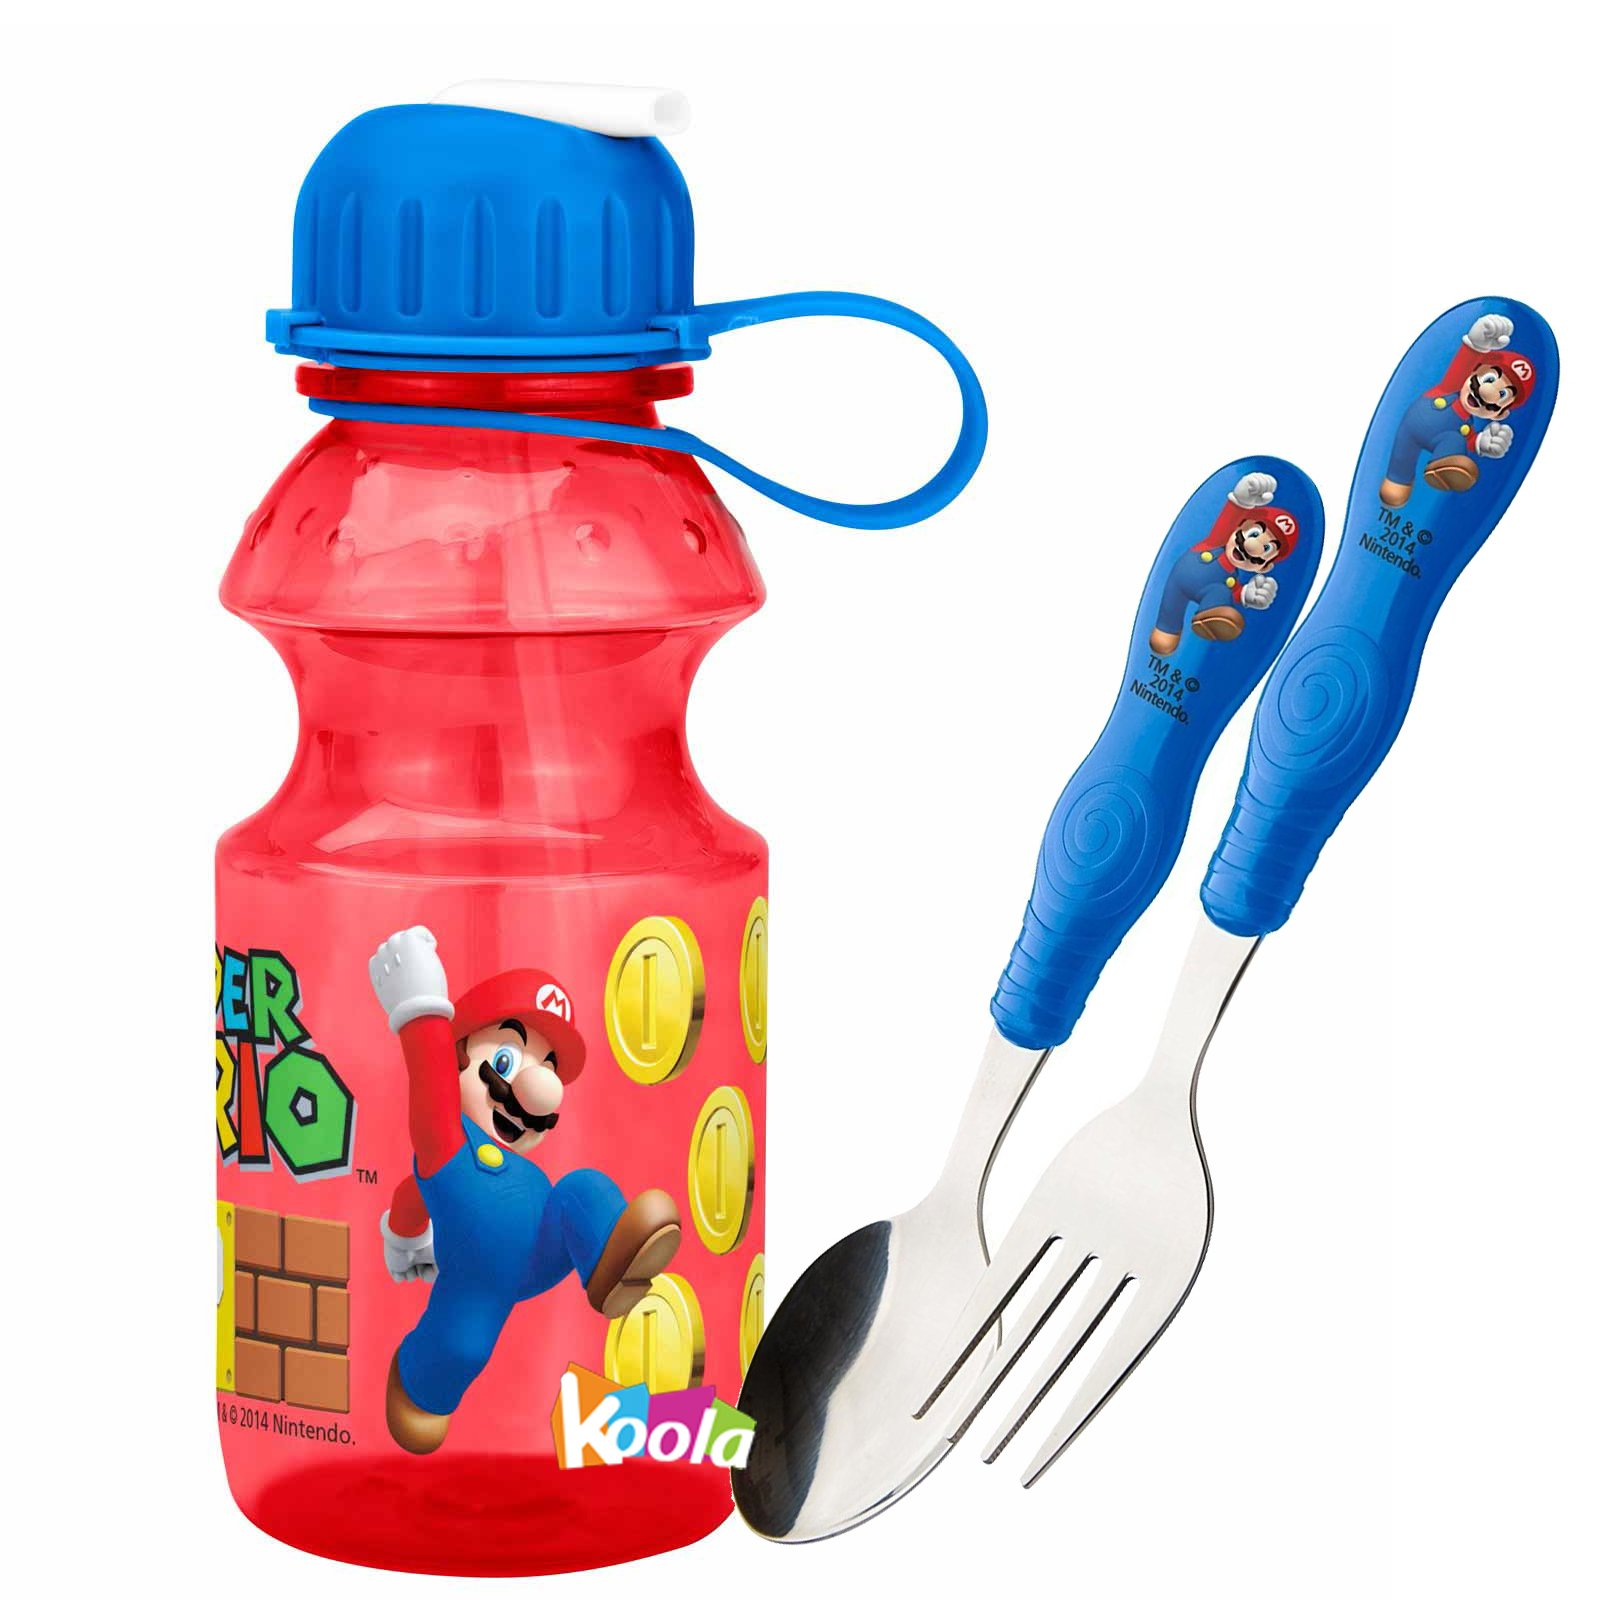 super mario brothers 14oz tritan plastic water bottle w/Spoon and Fork Flatware by super mario (Image #1)